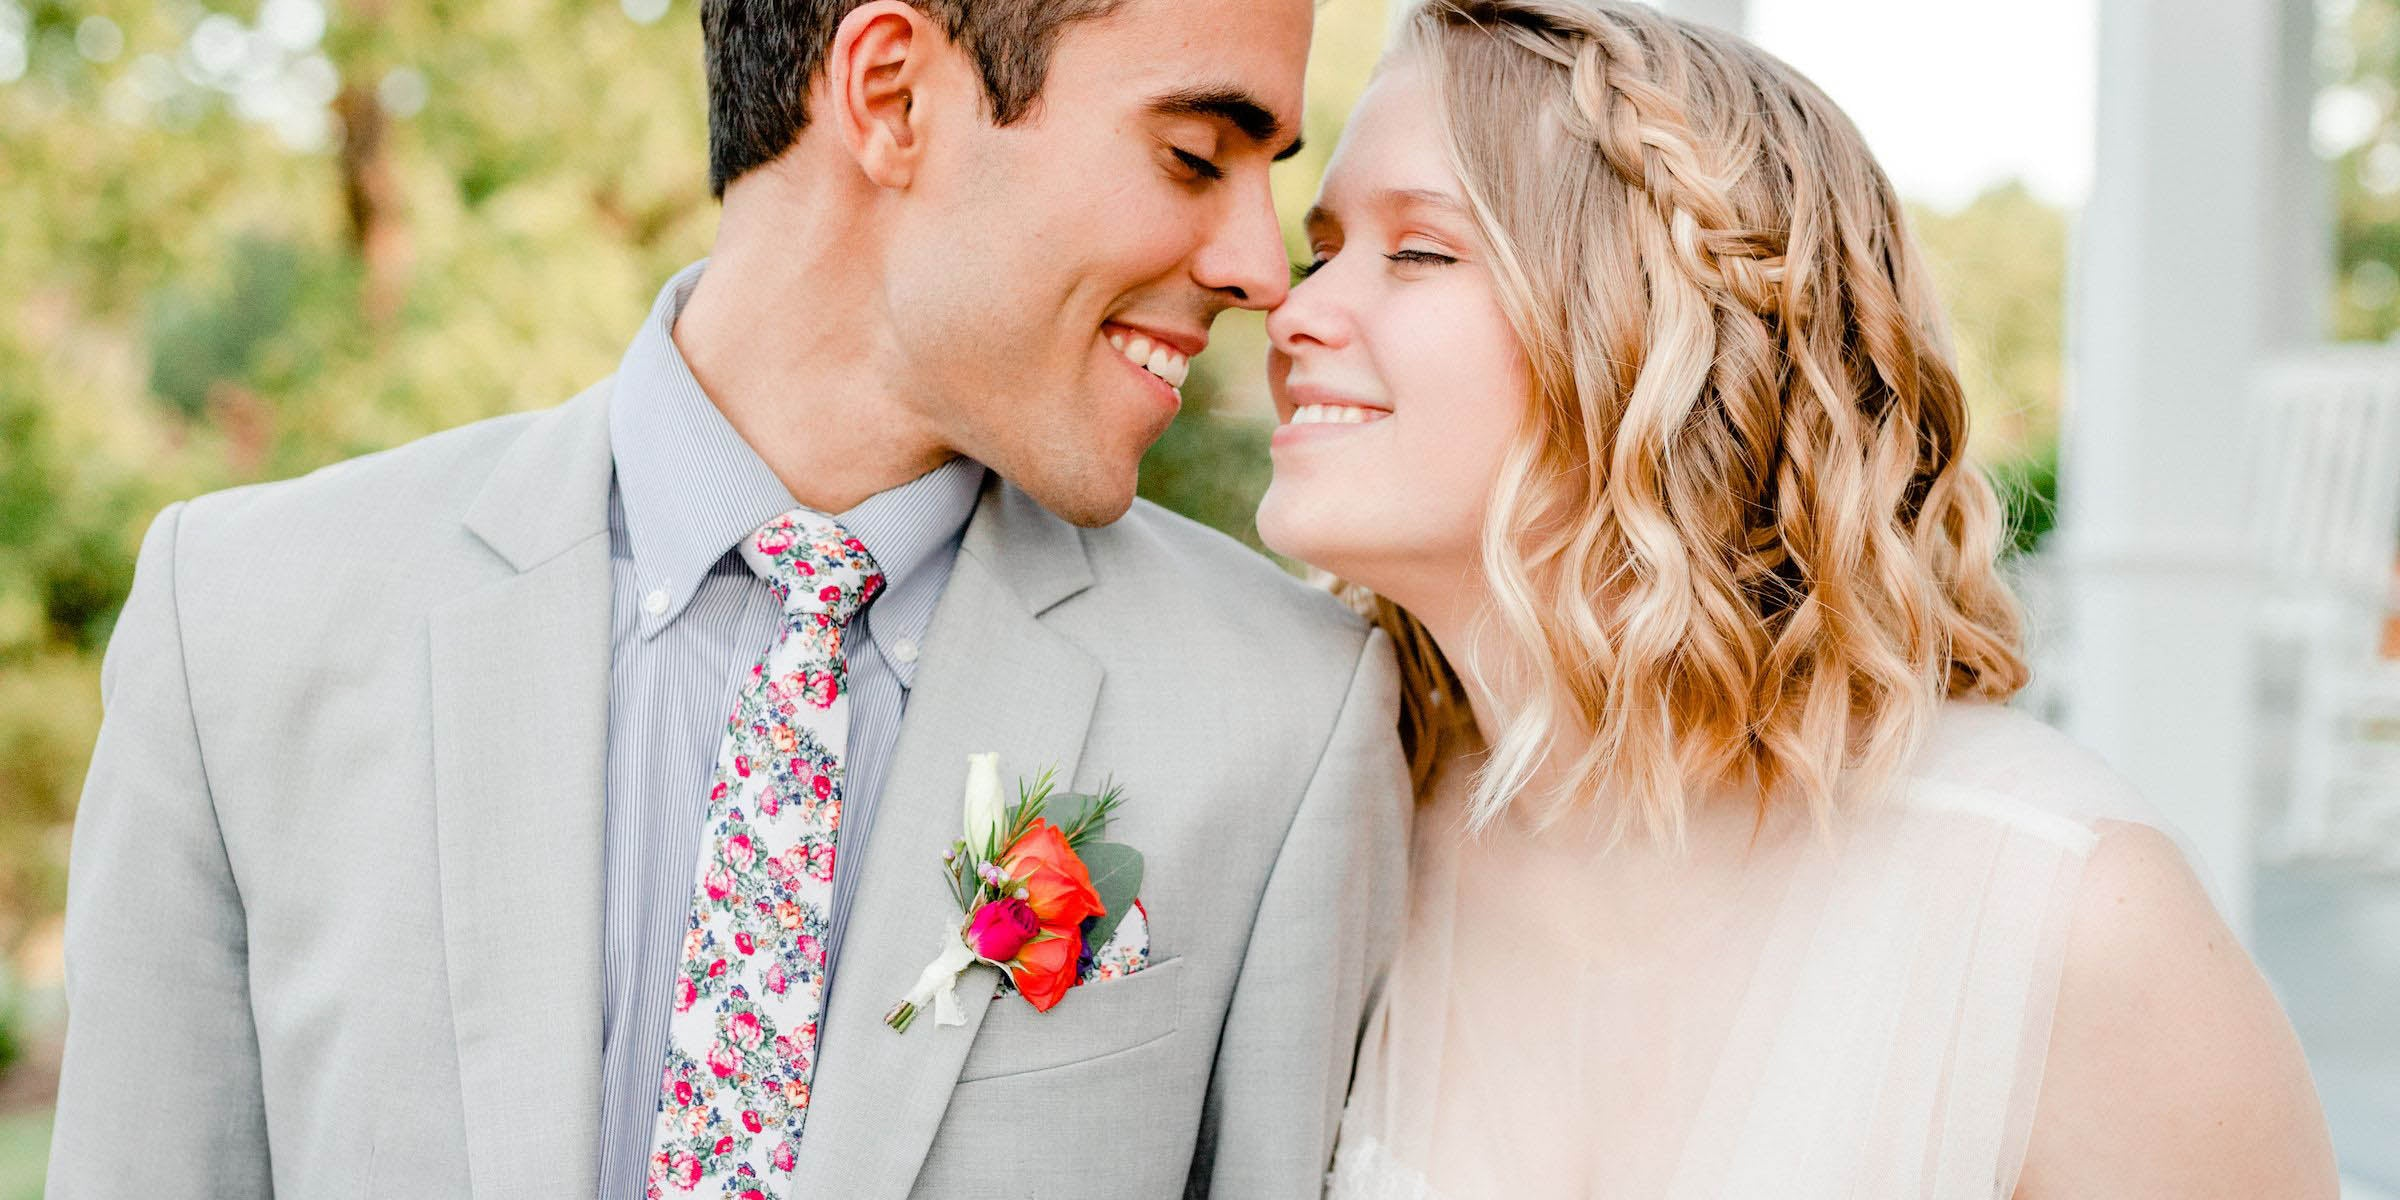 Custom Wedding Neckties